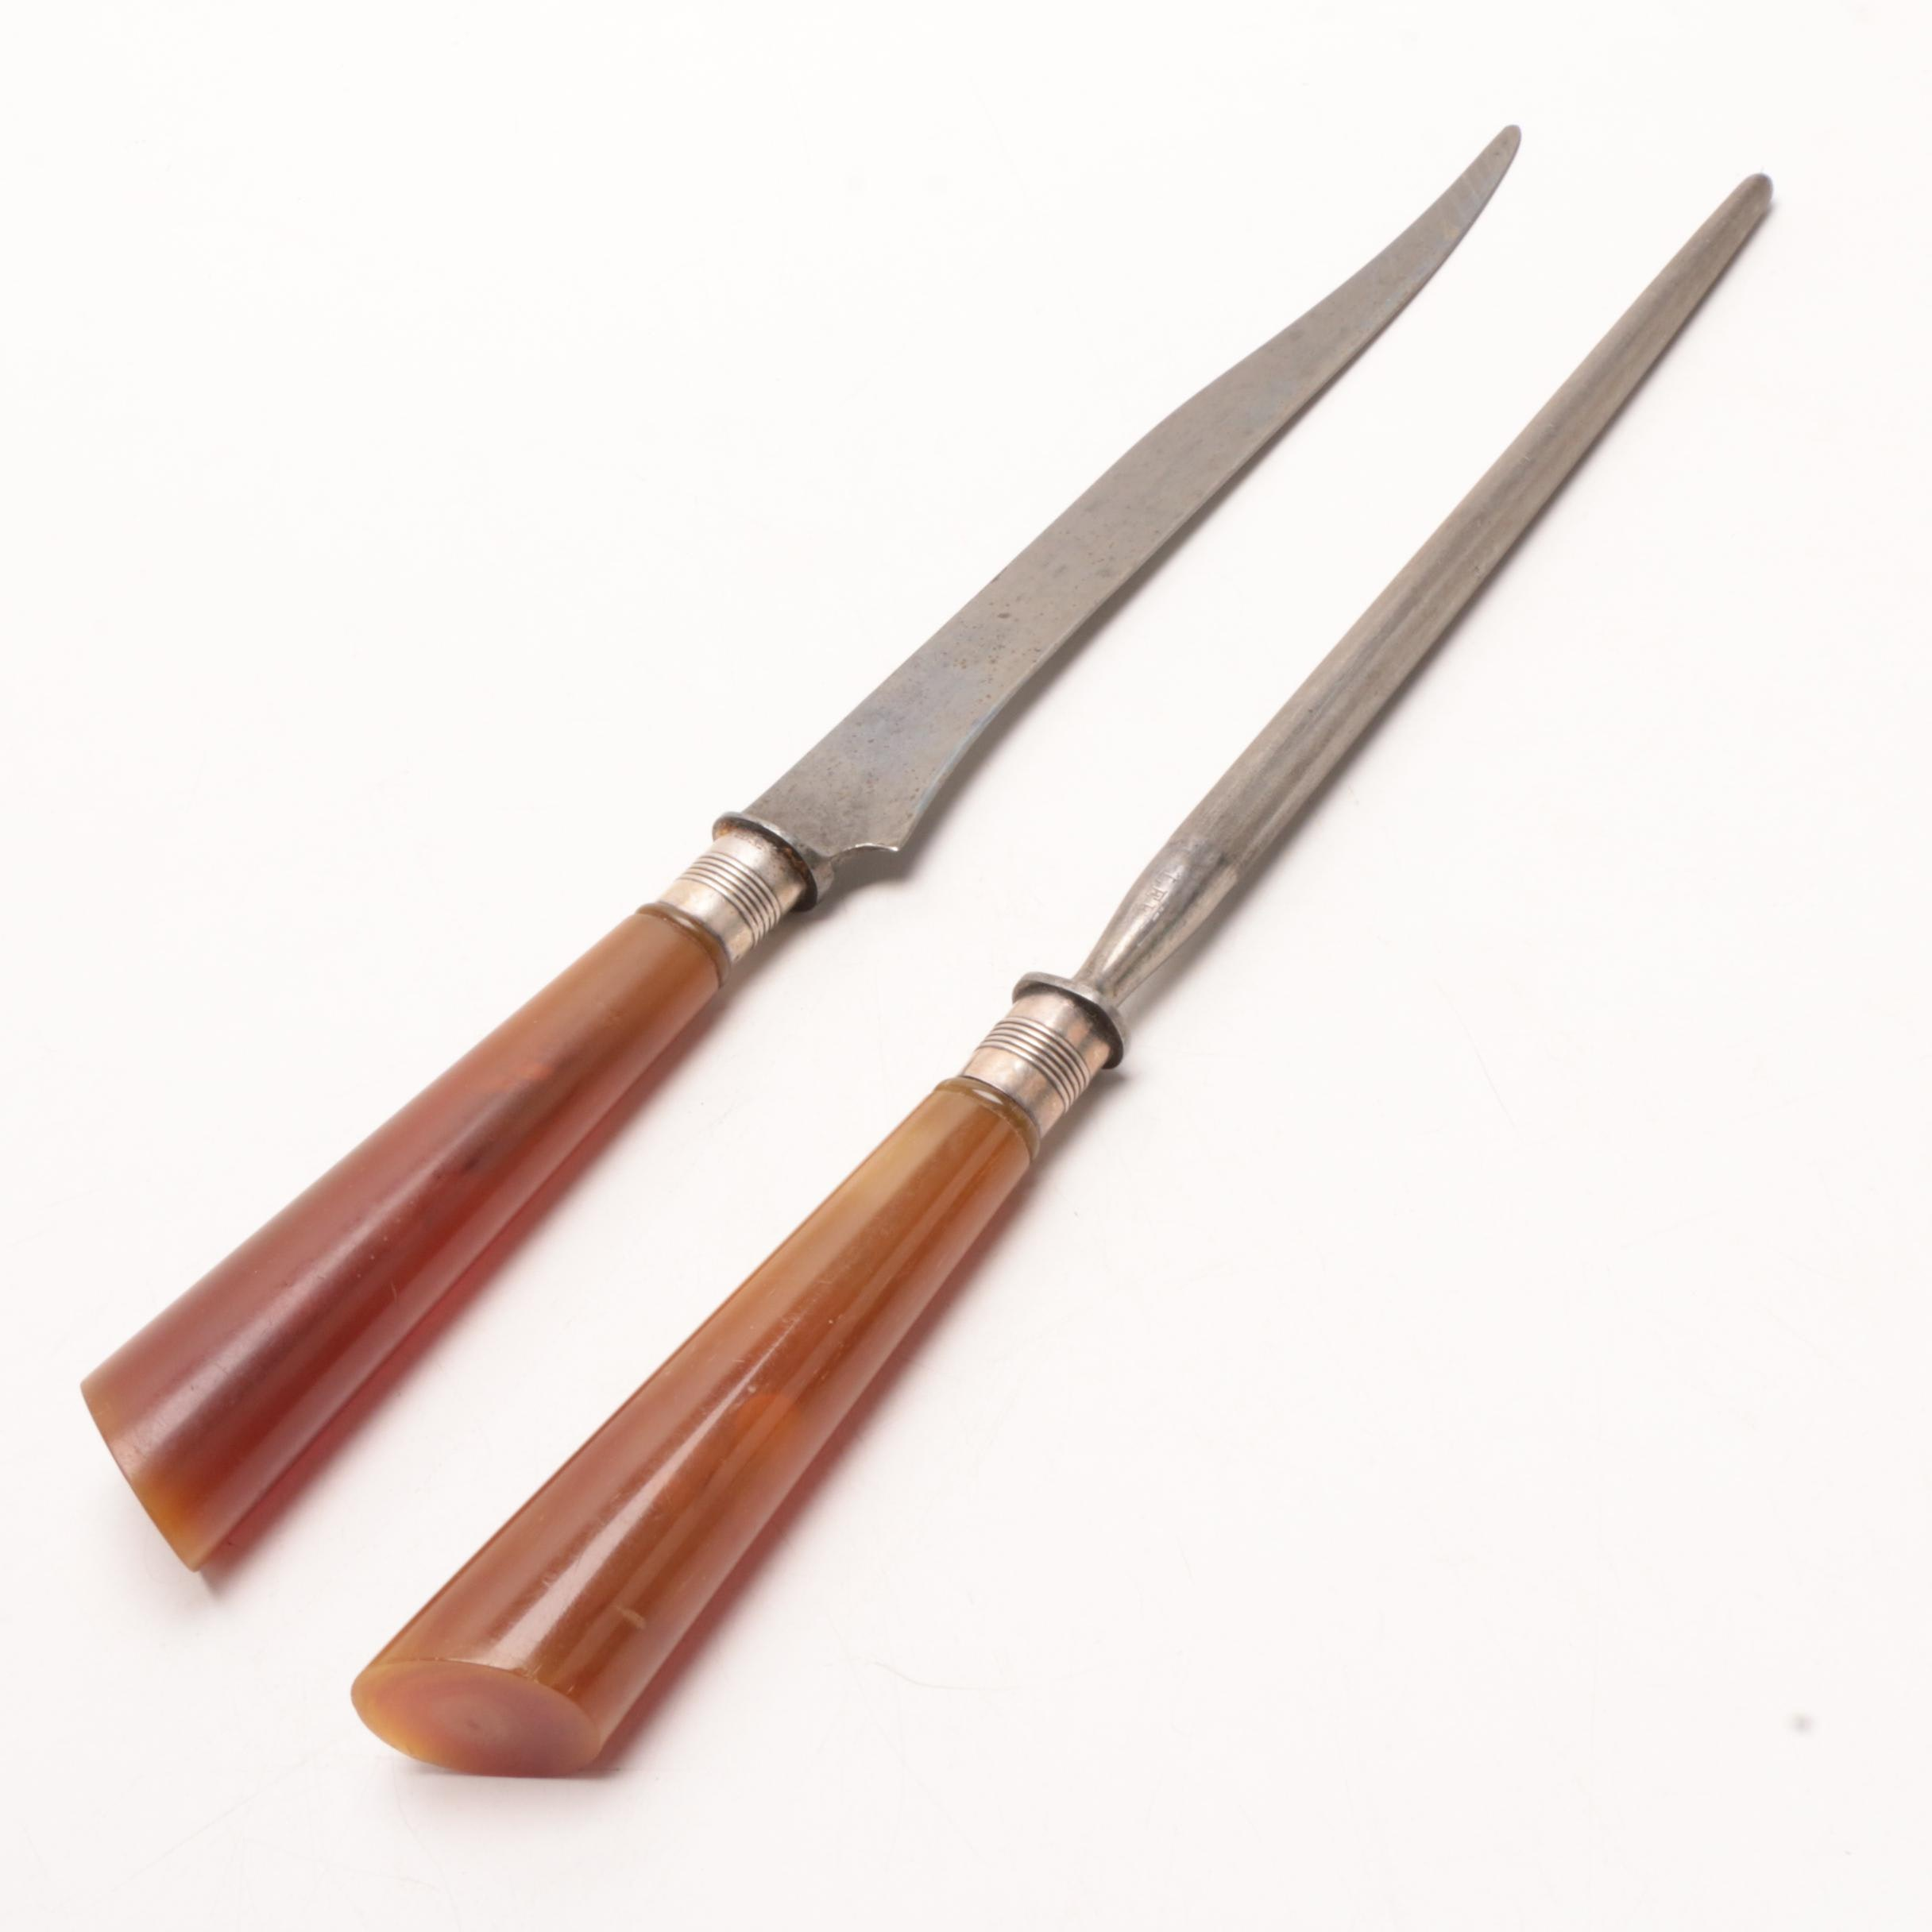 Universal Carving Knife and Sharpening Steel with Sterling Bolsters